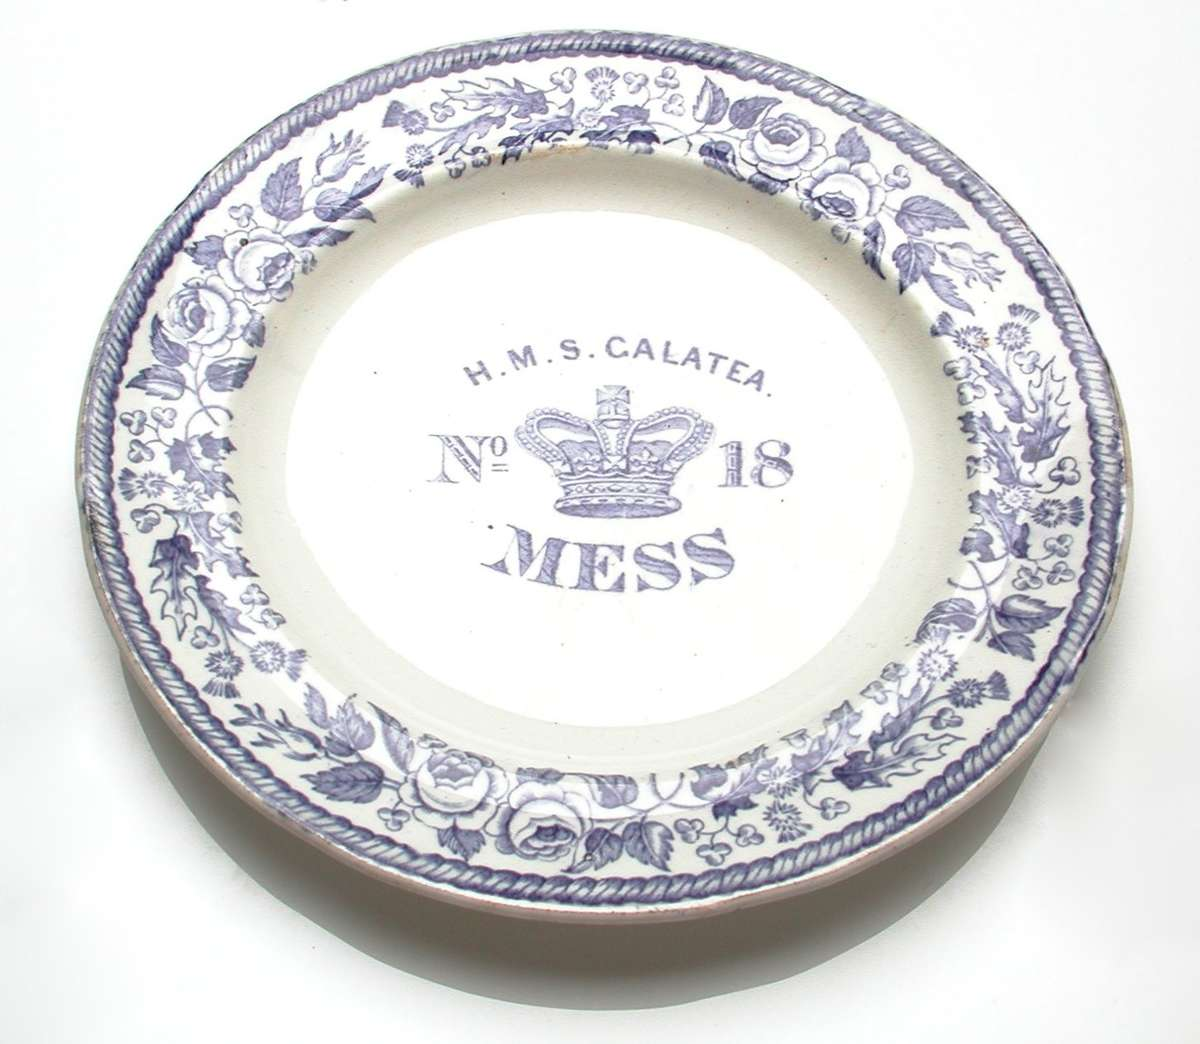 A mess plate from the HMAS Galatea ANMM collection